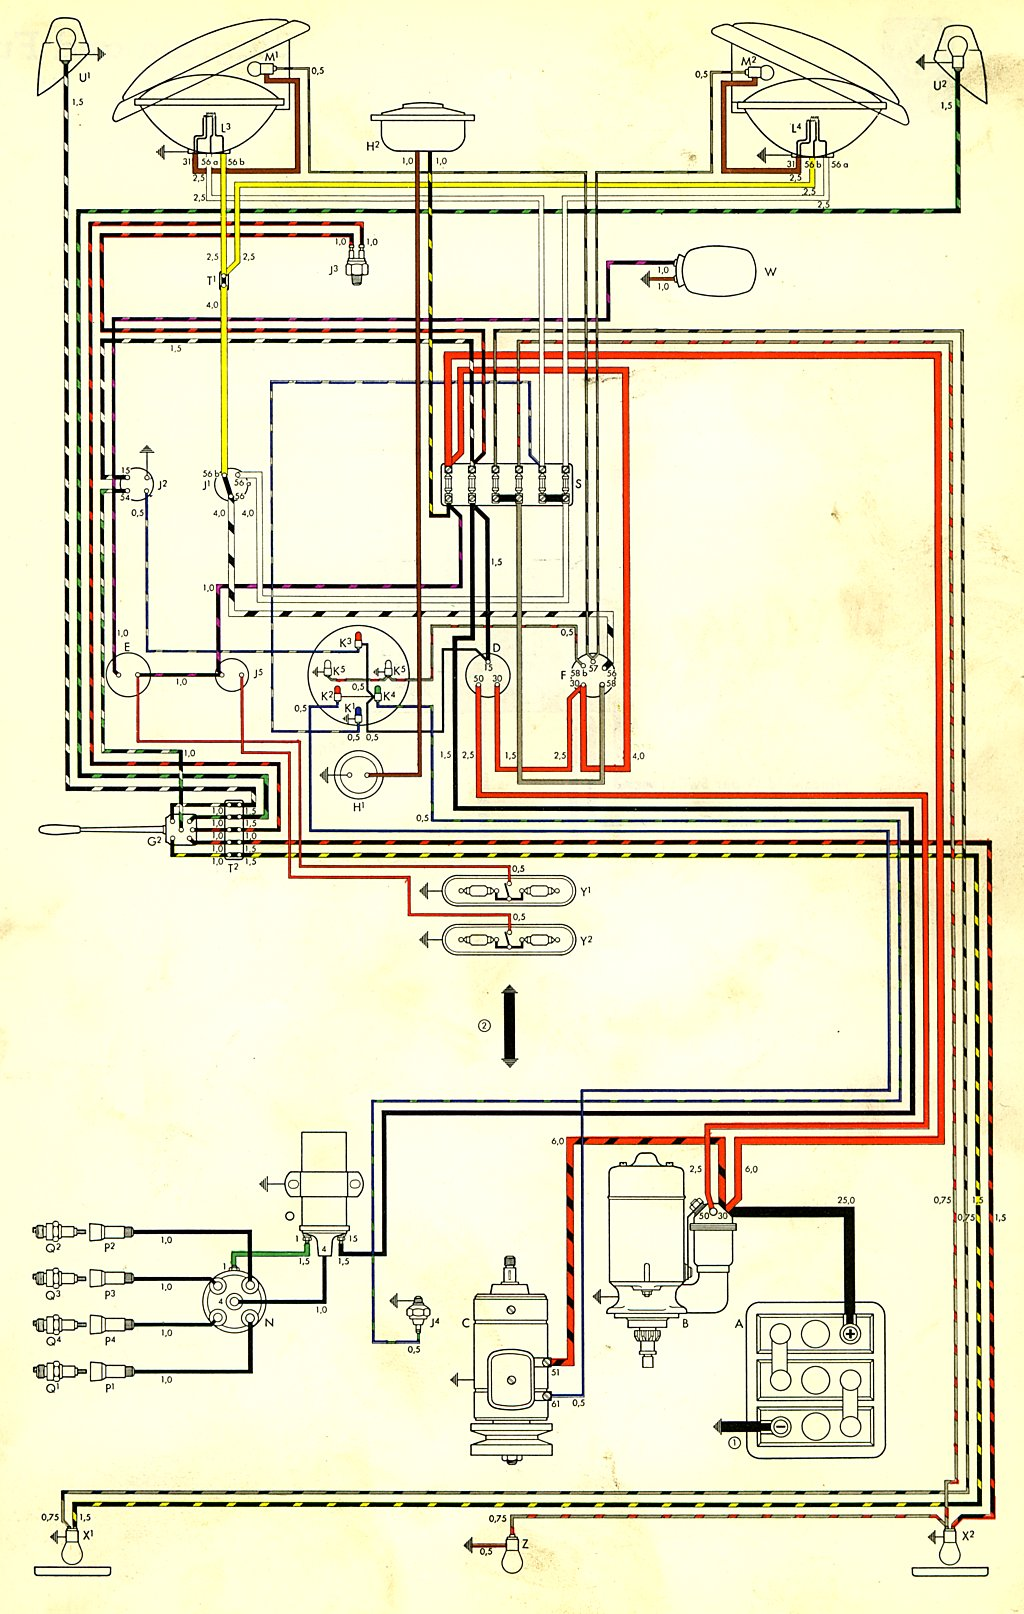 thesamba com type 2 wiring diagrams rh thesamba com 1973 VW Beetle Wiring Diagram 1965 VW Beetle Wiring Diagram